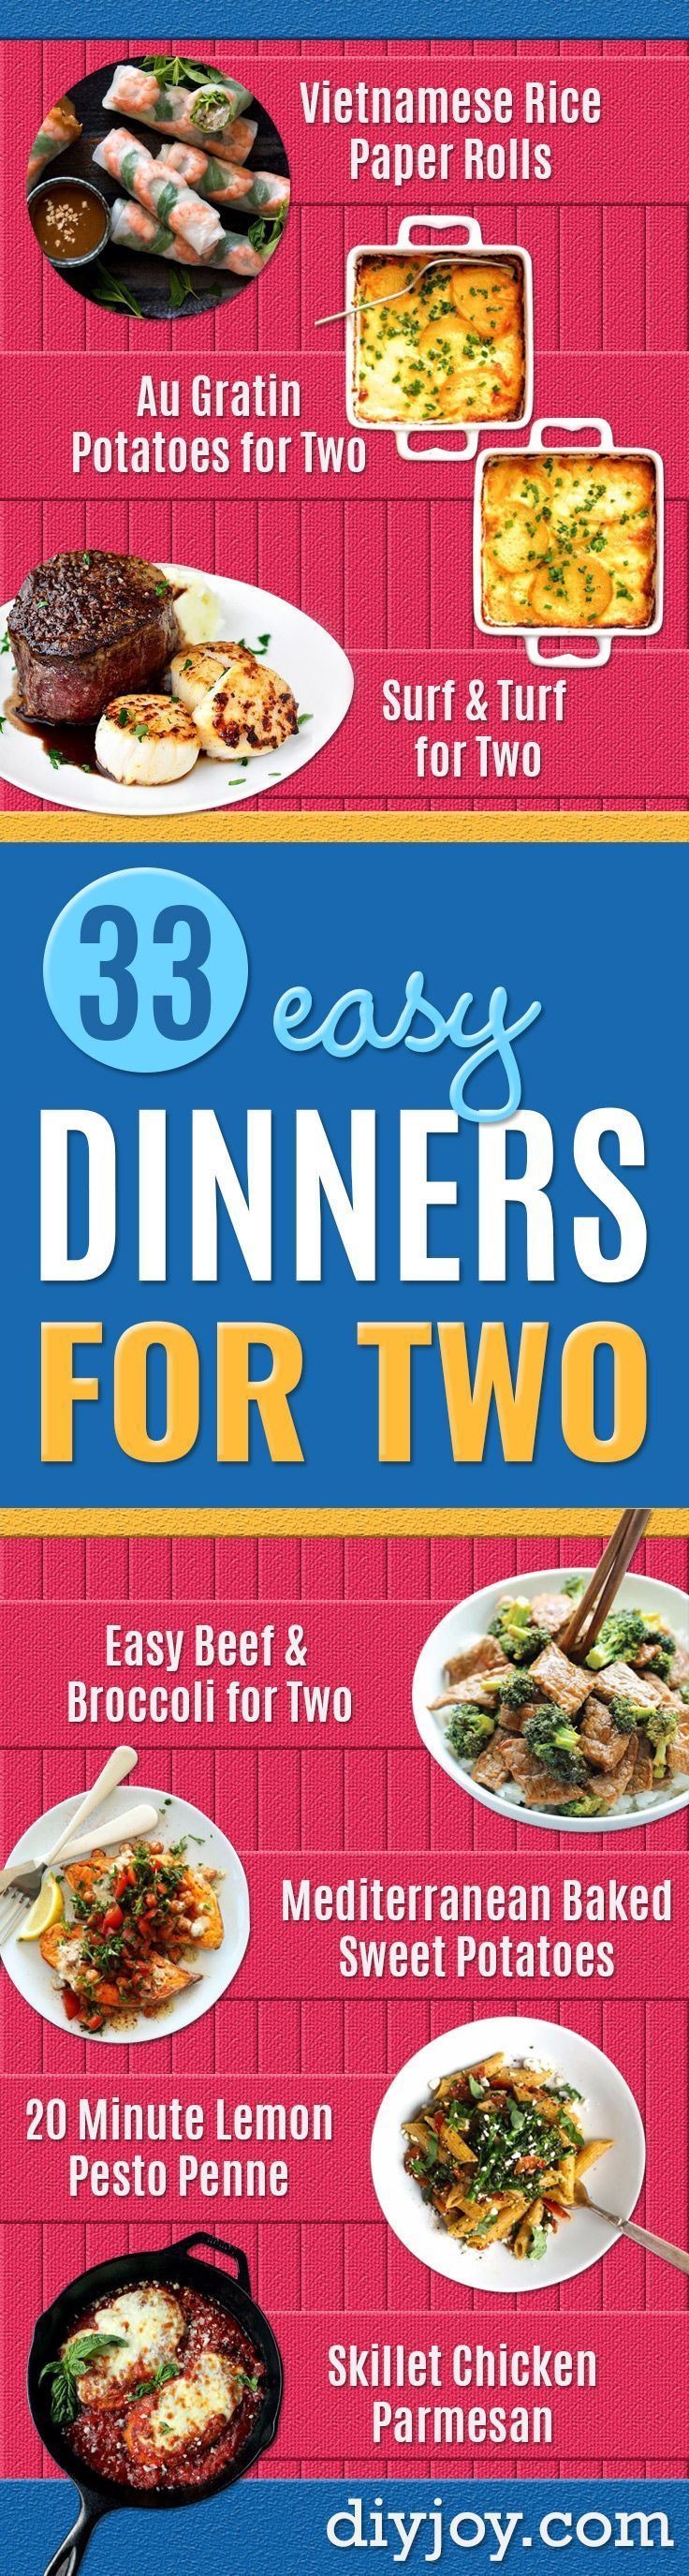 Easy Dinner Ideas for Two - Quick, Fast and Simple Recipes to Make for Two People - Freeze and Make Ahead Dinner Recipe Tips for Best Weeknight Dinners - Chicken, Fish, Vegetable, No Bake and Vegetarian Options - Crockpot, Microwave, Healthy, Lowfat Options http://diyjoy.com/easy-dinners-for-two #fishrecipesfordinner